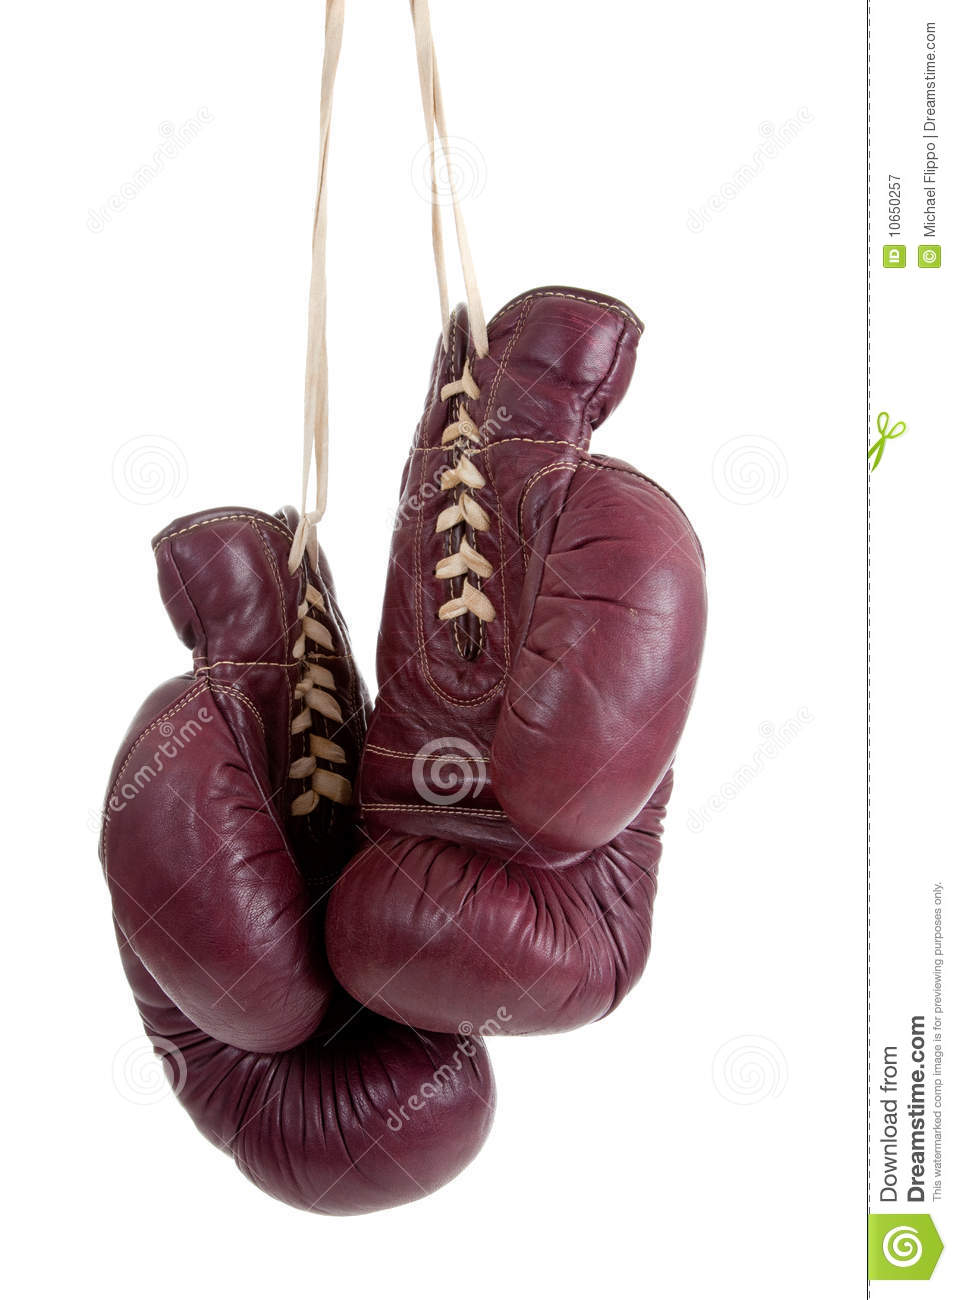 Leather Antique Boxing Gloves Royalty Free Stock